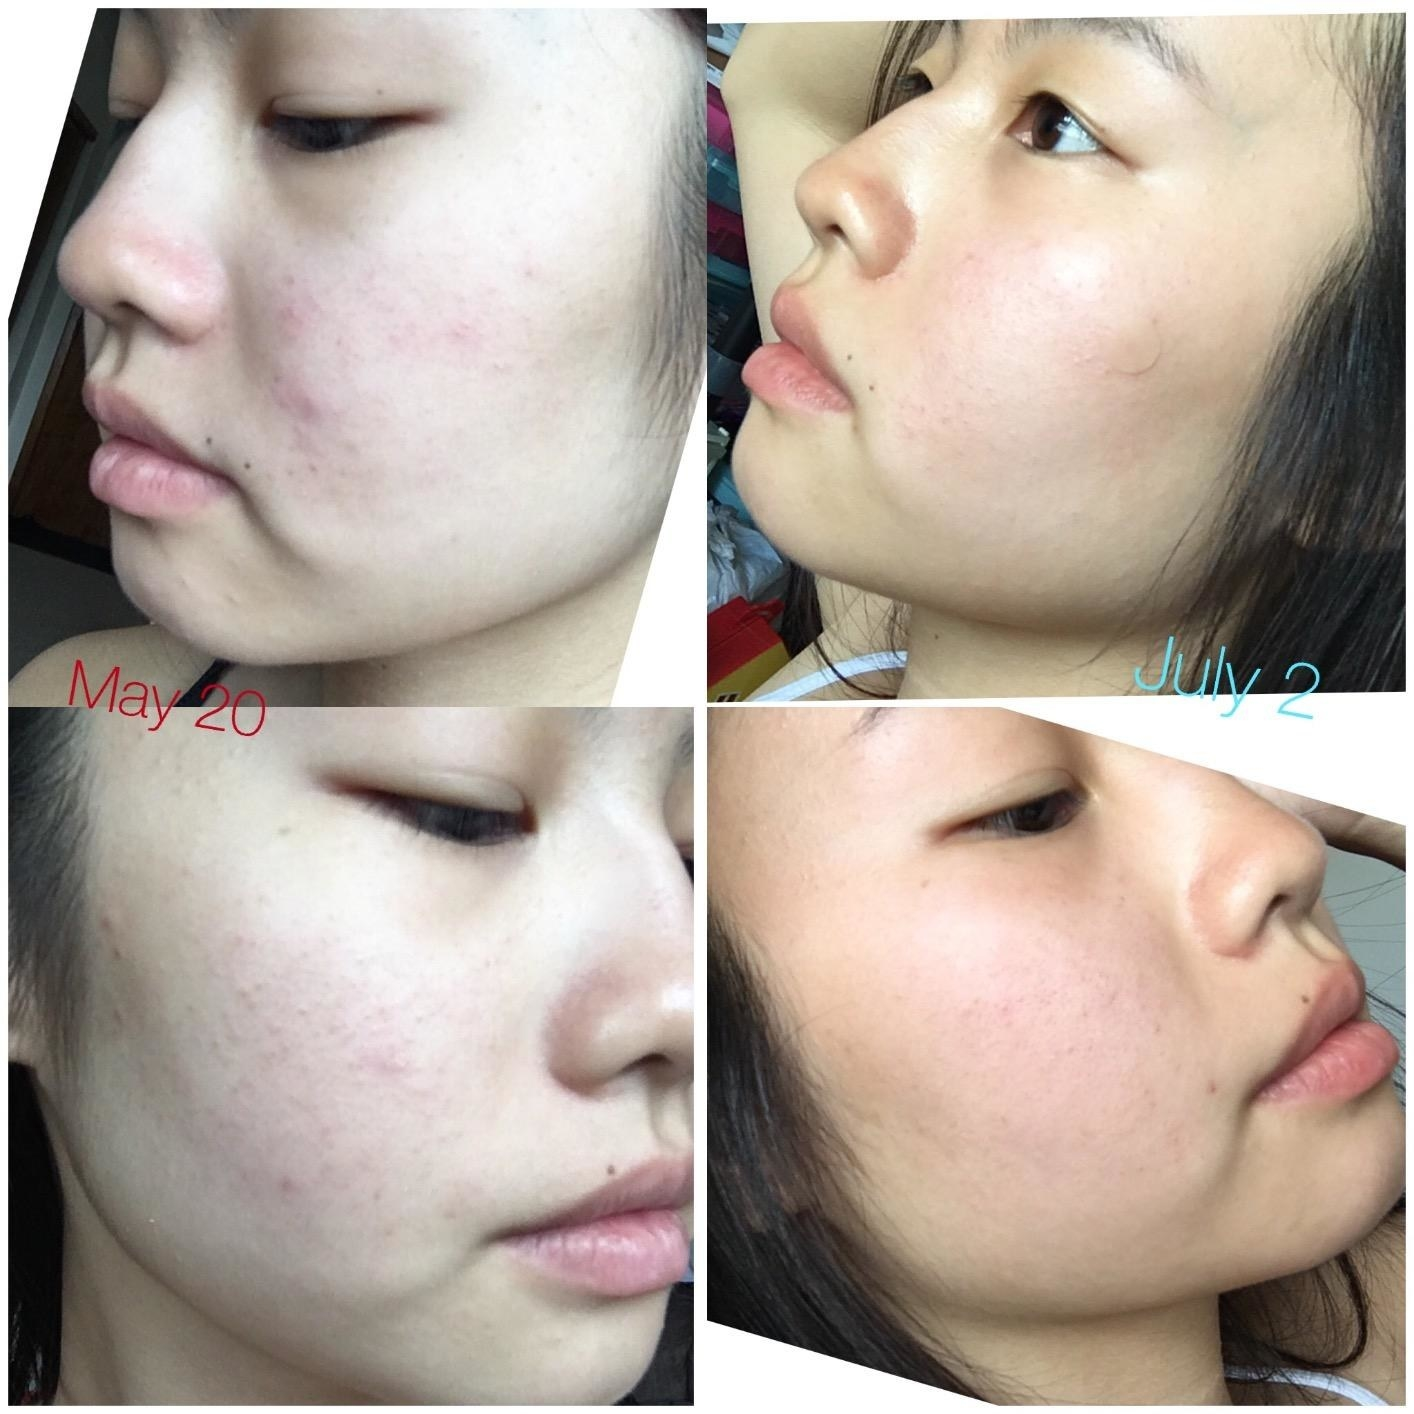 Reviewer's progression photos showing the serum reduced redness and breakouts on their face